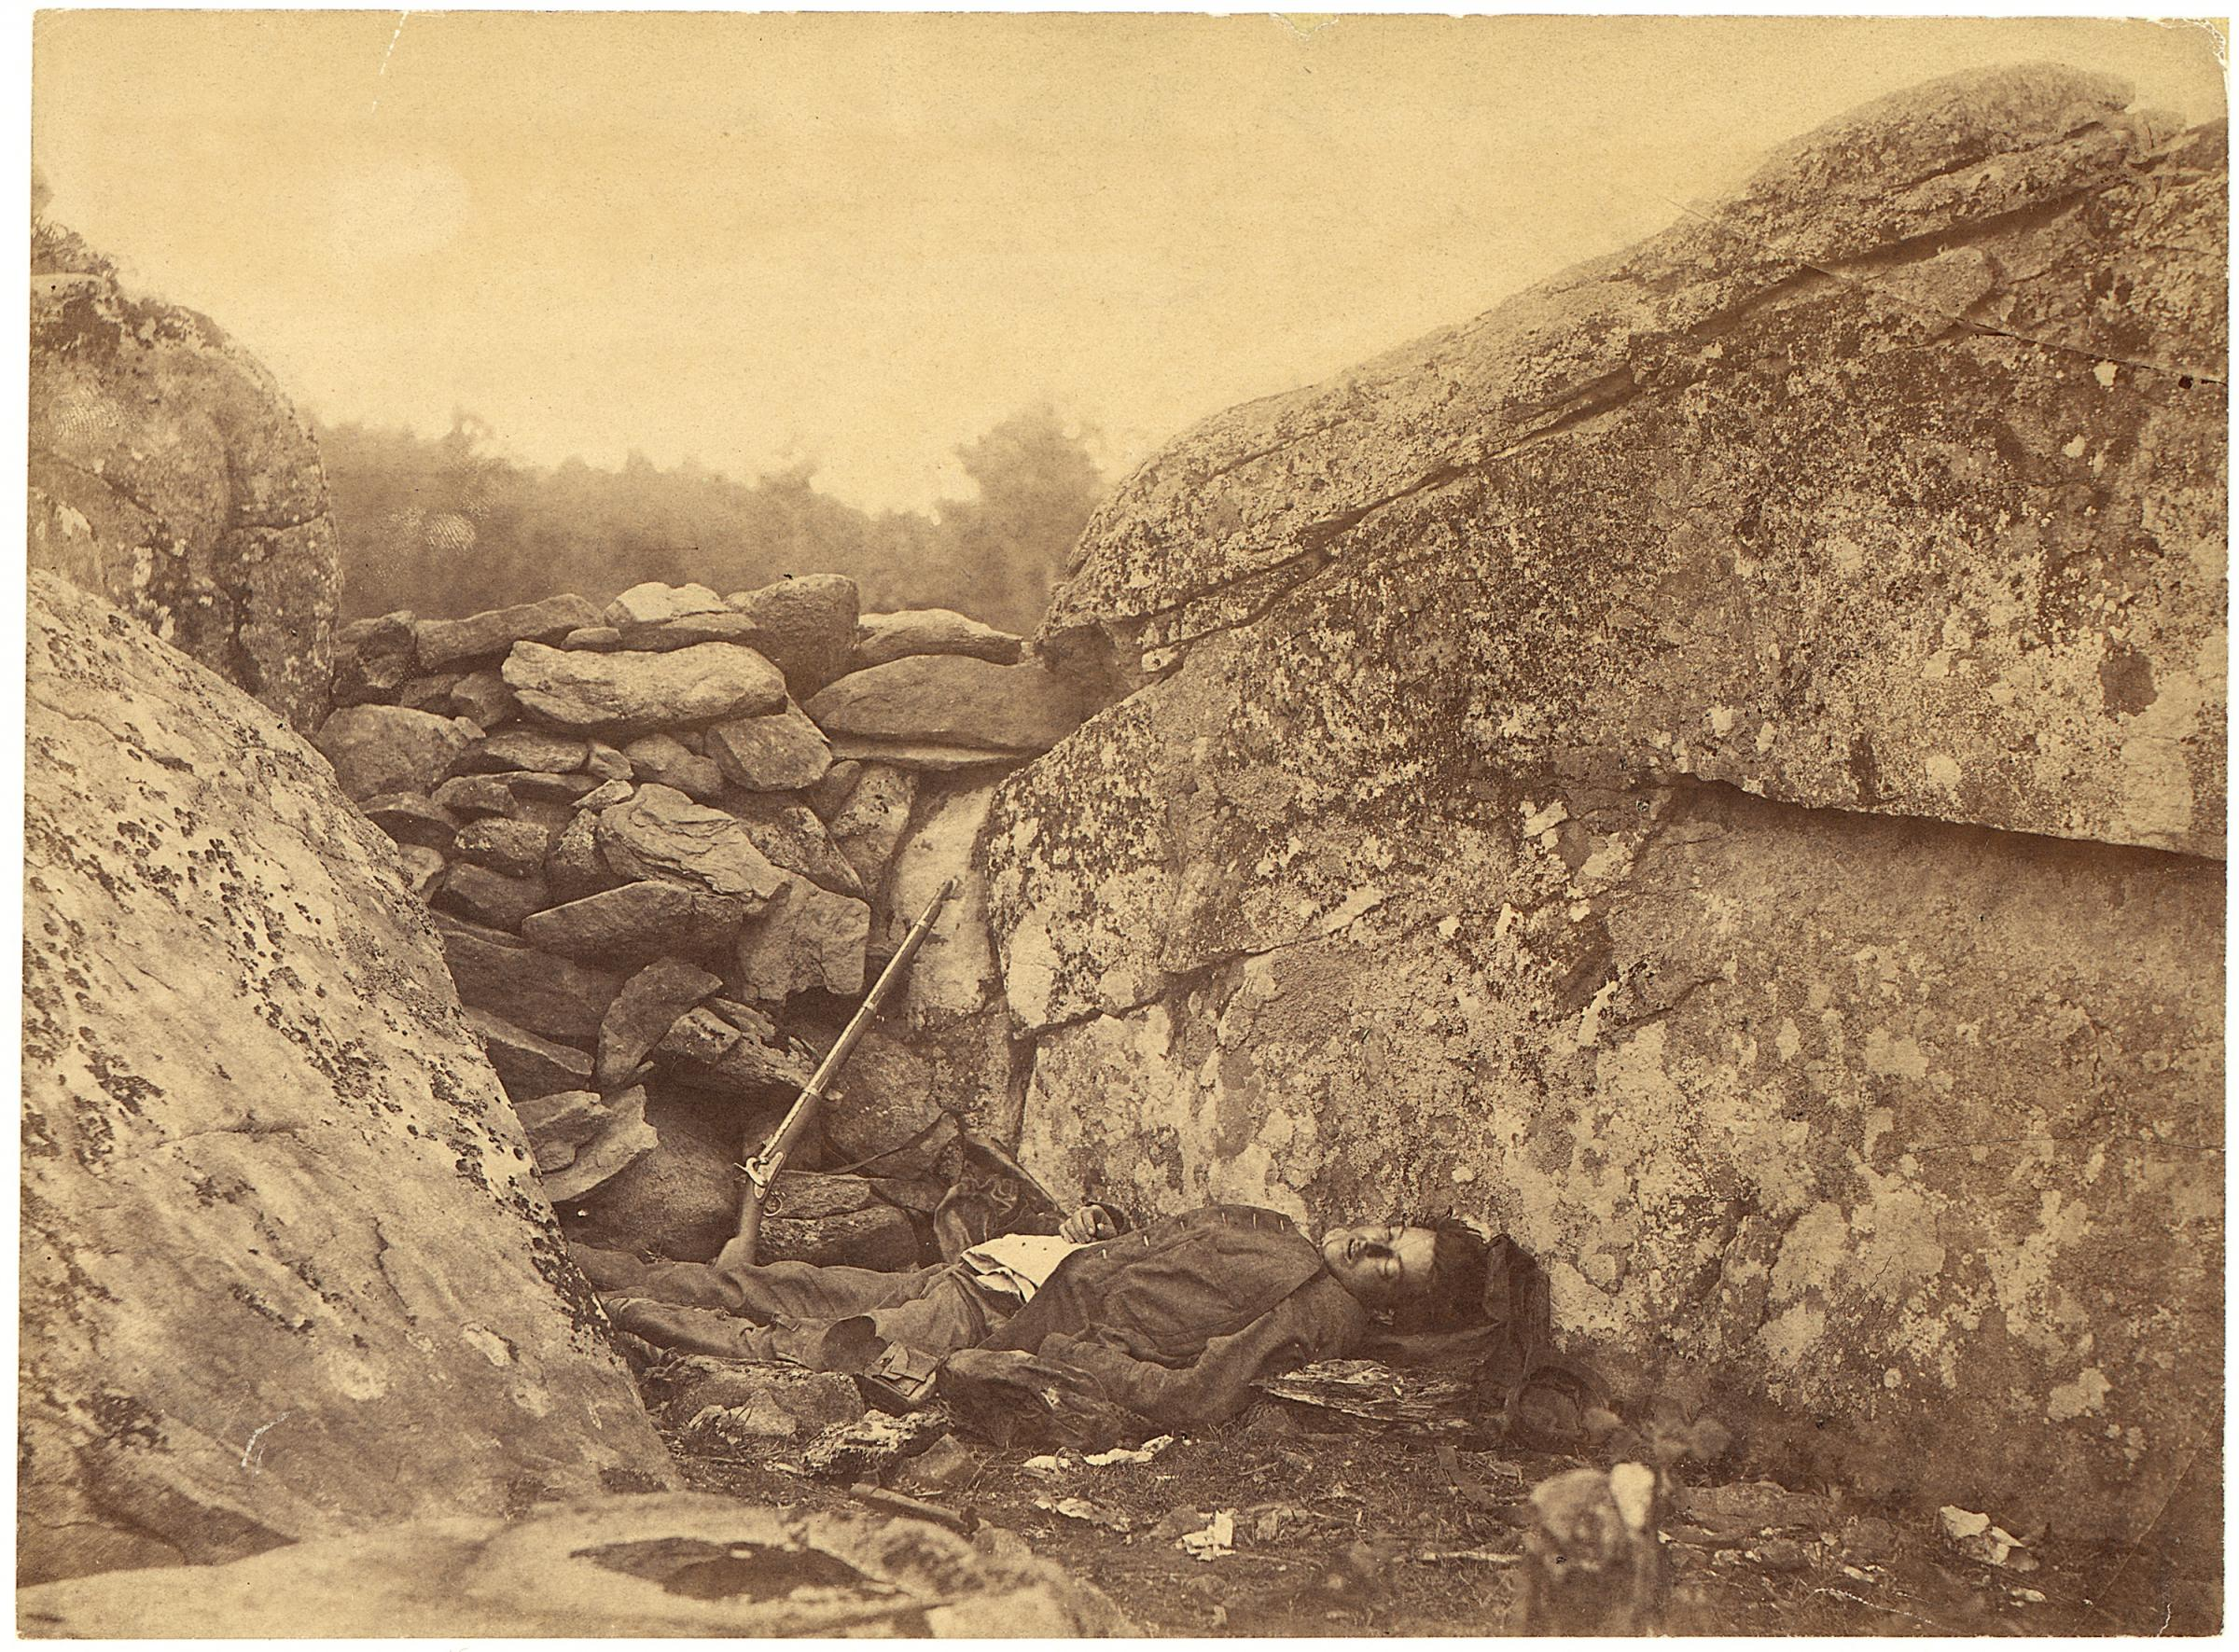 Three Reasons Why American Artists Rarely Painted The Civil War | KGOU